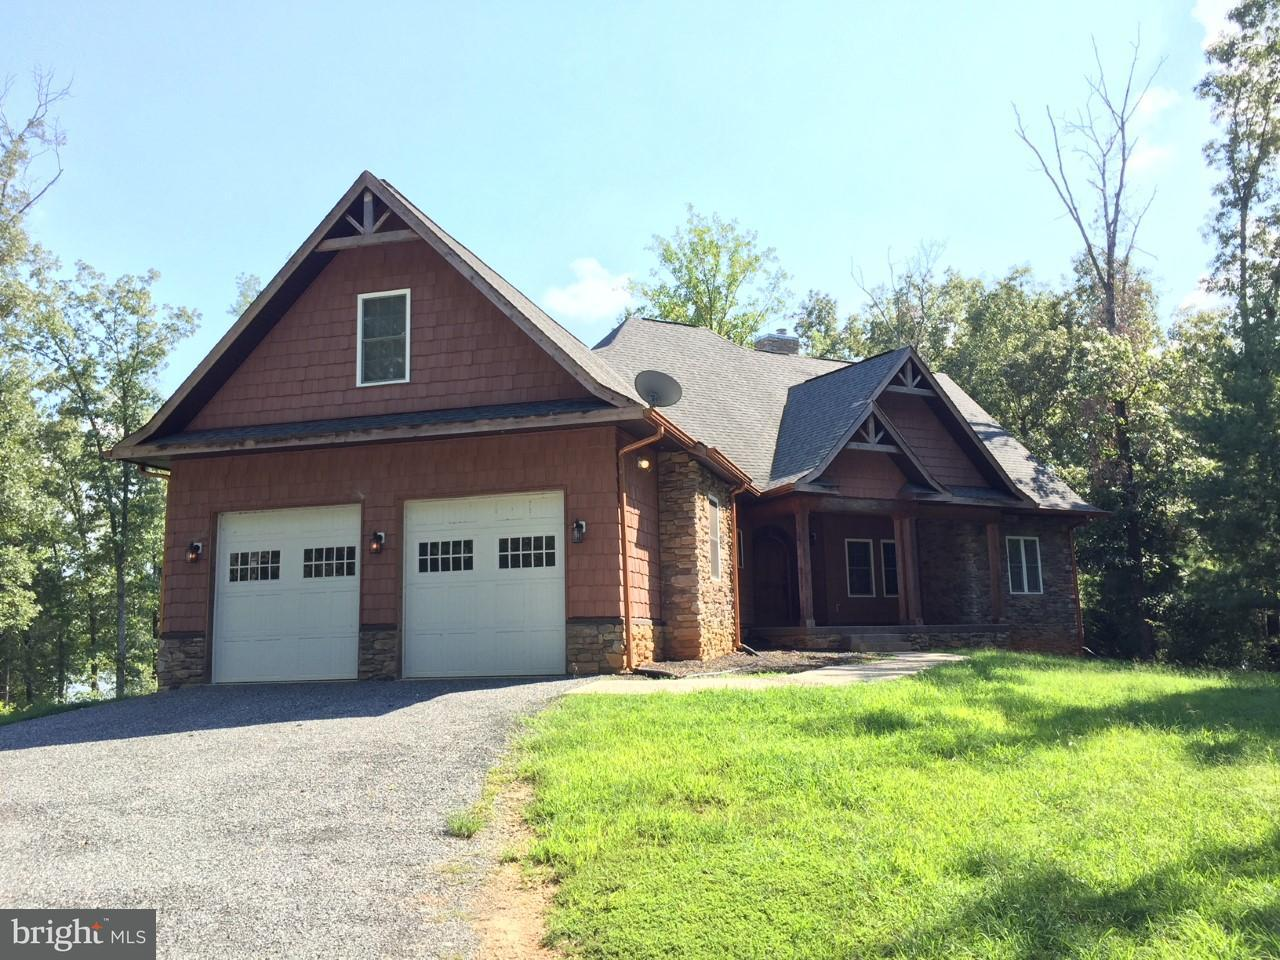 Single Family Home for Sale at 14800 COMFORT Lane 14800 COMFORT Lane Mineral, Virginia 23117 United States